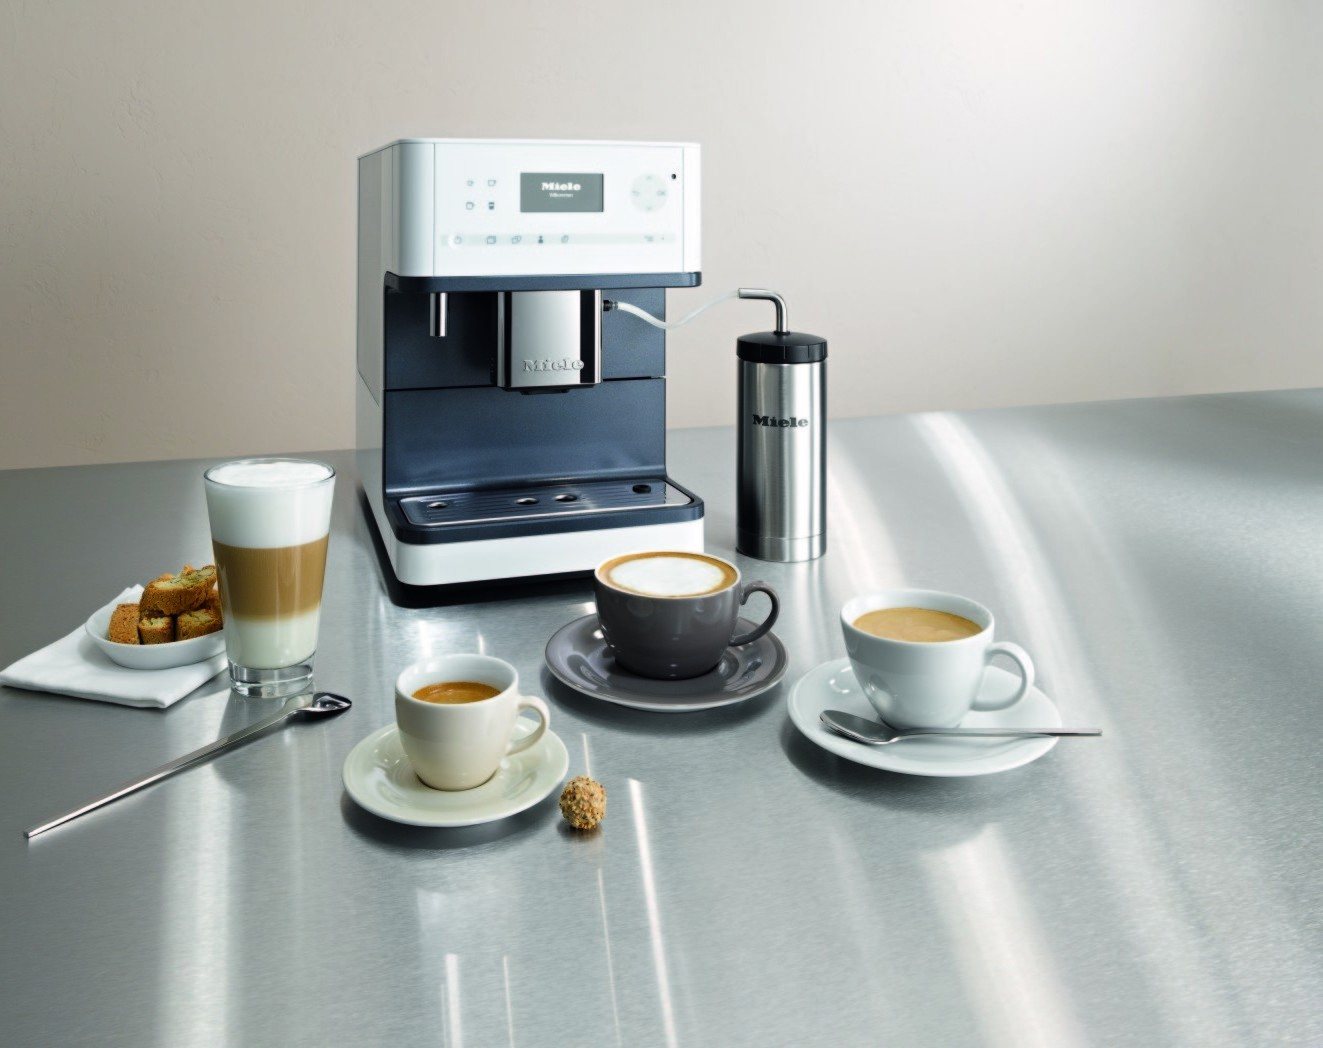 Plumbed Coffee Maker With Grinder : CM 6310 WH Miele Coffee Maker with Grinder, White - Make Espresso Drinks with Ease